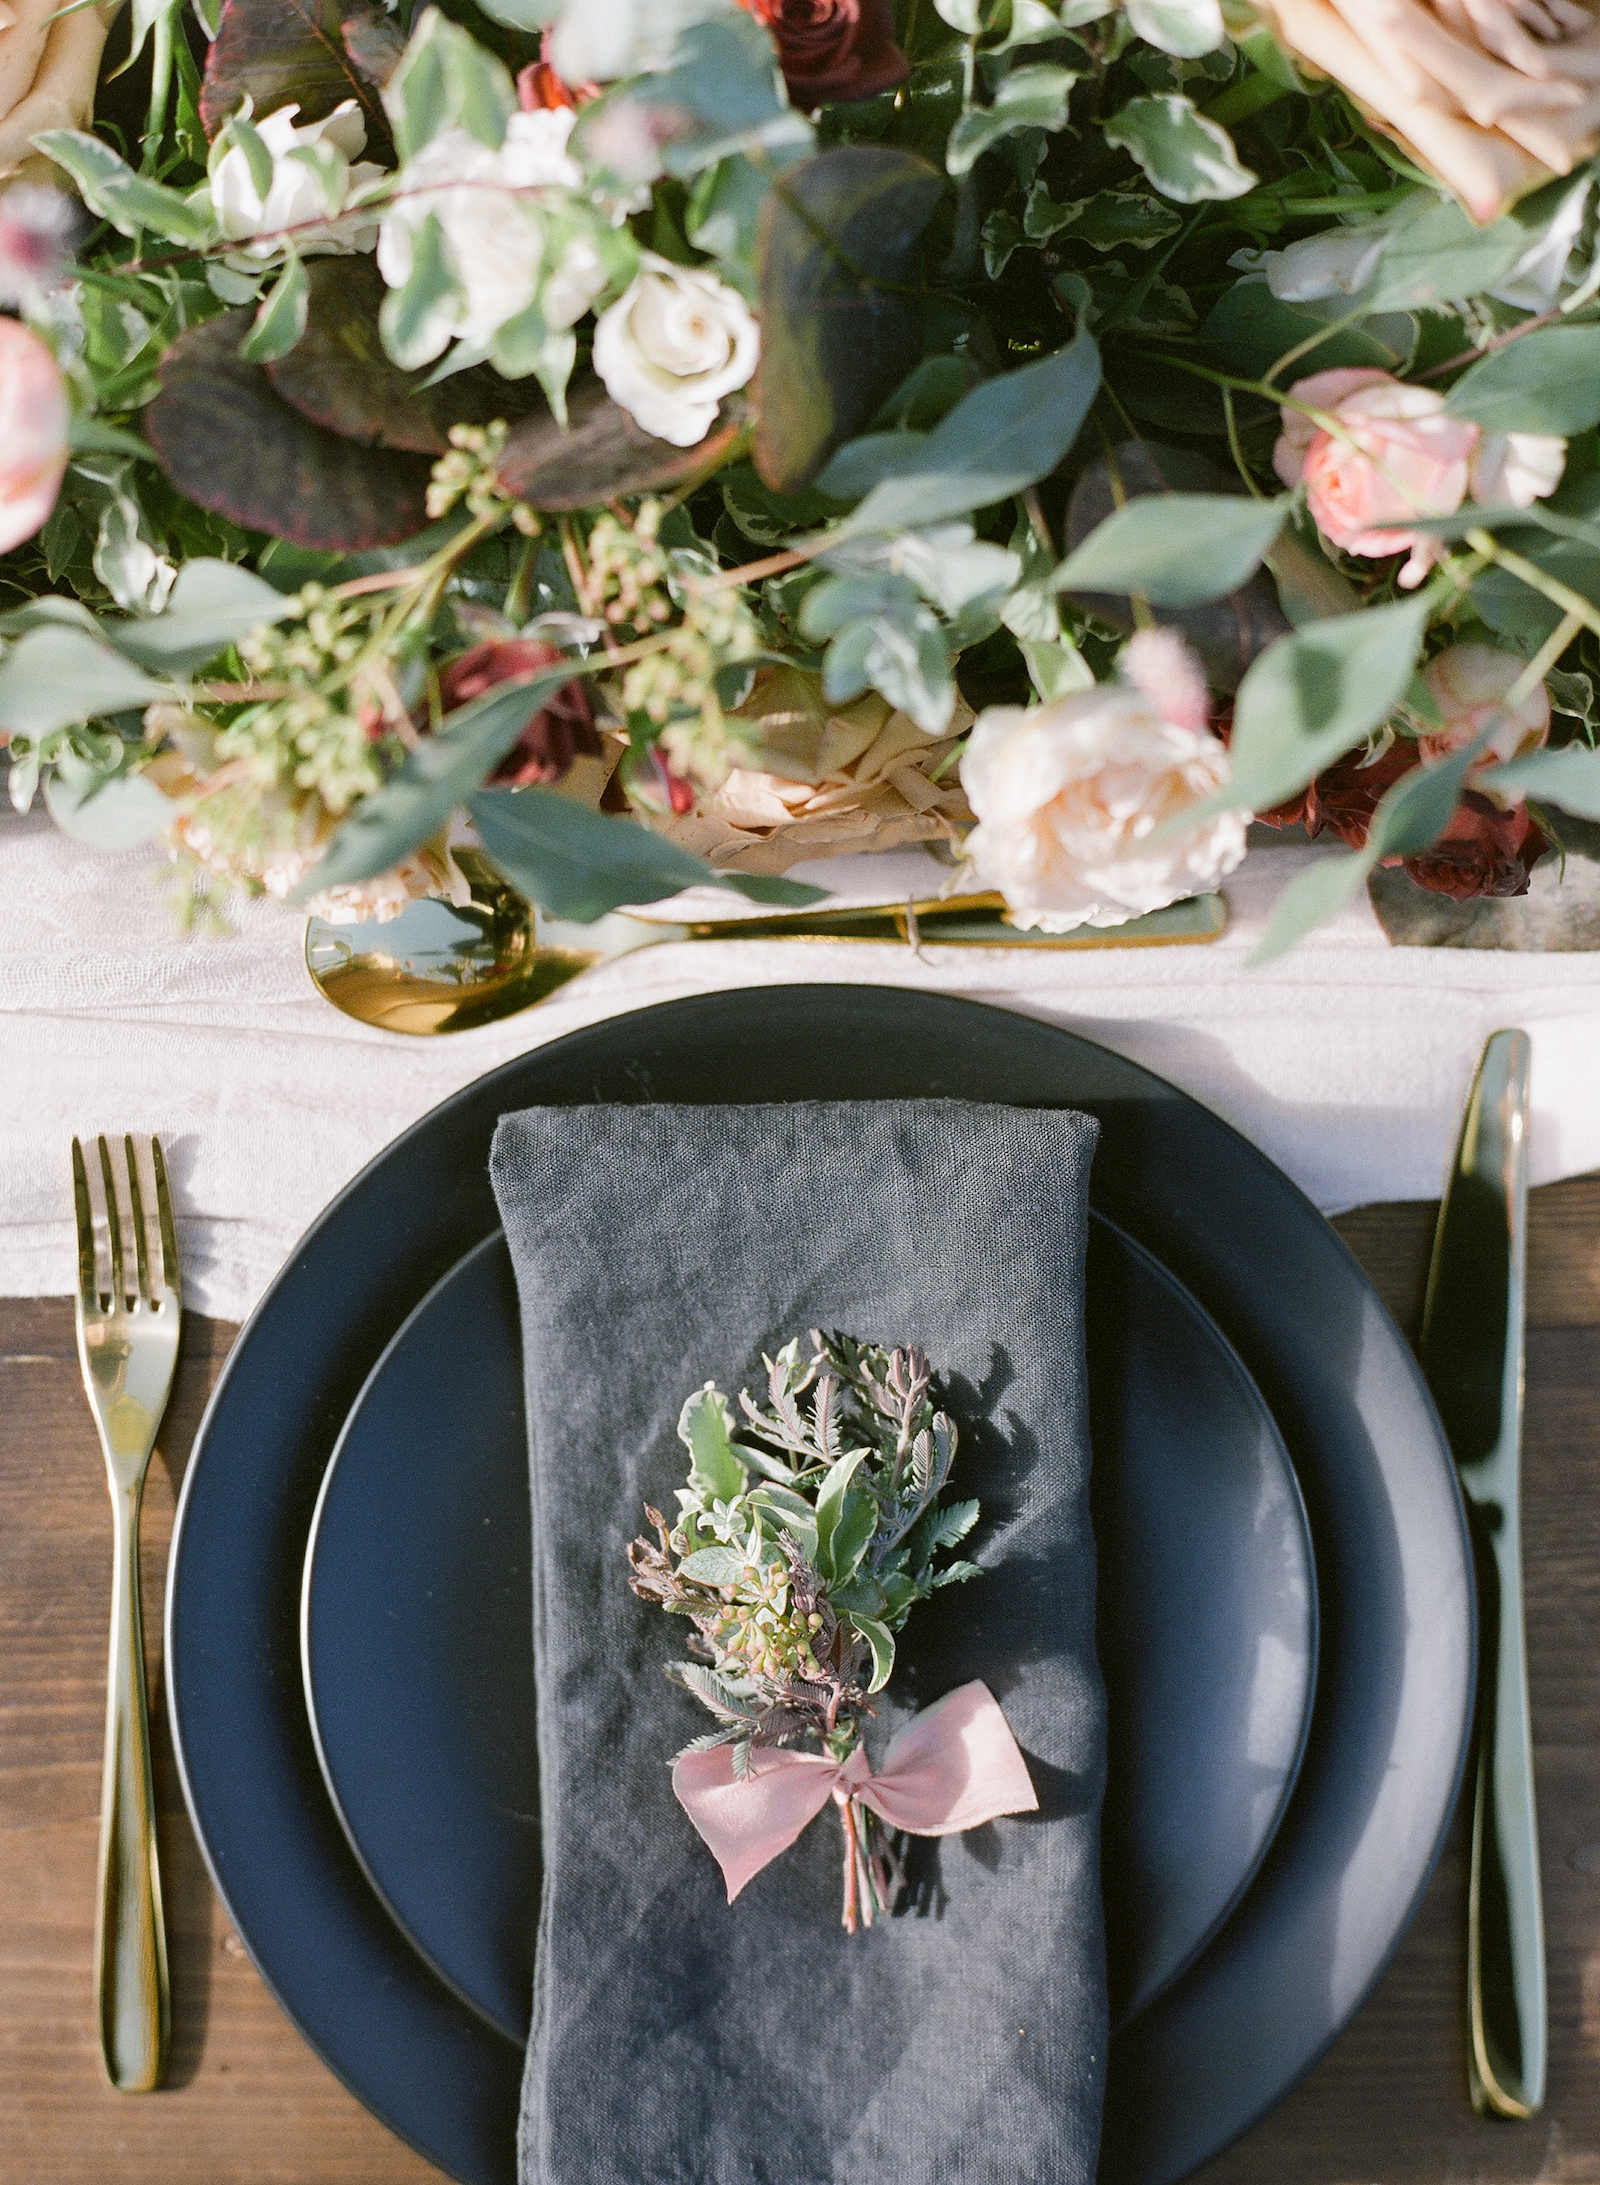 Lily & Sage | Feminine & Refined Autumn Wedding Inspiration with a Hint of Moodiness | Molly Carr Photography